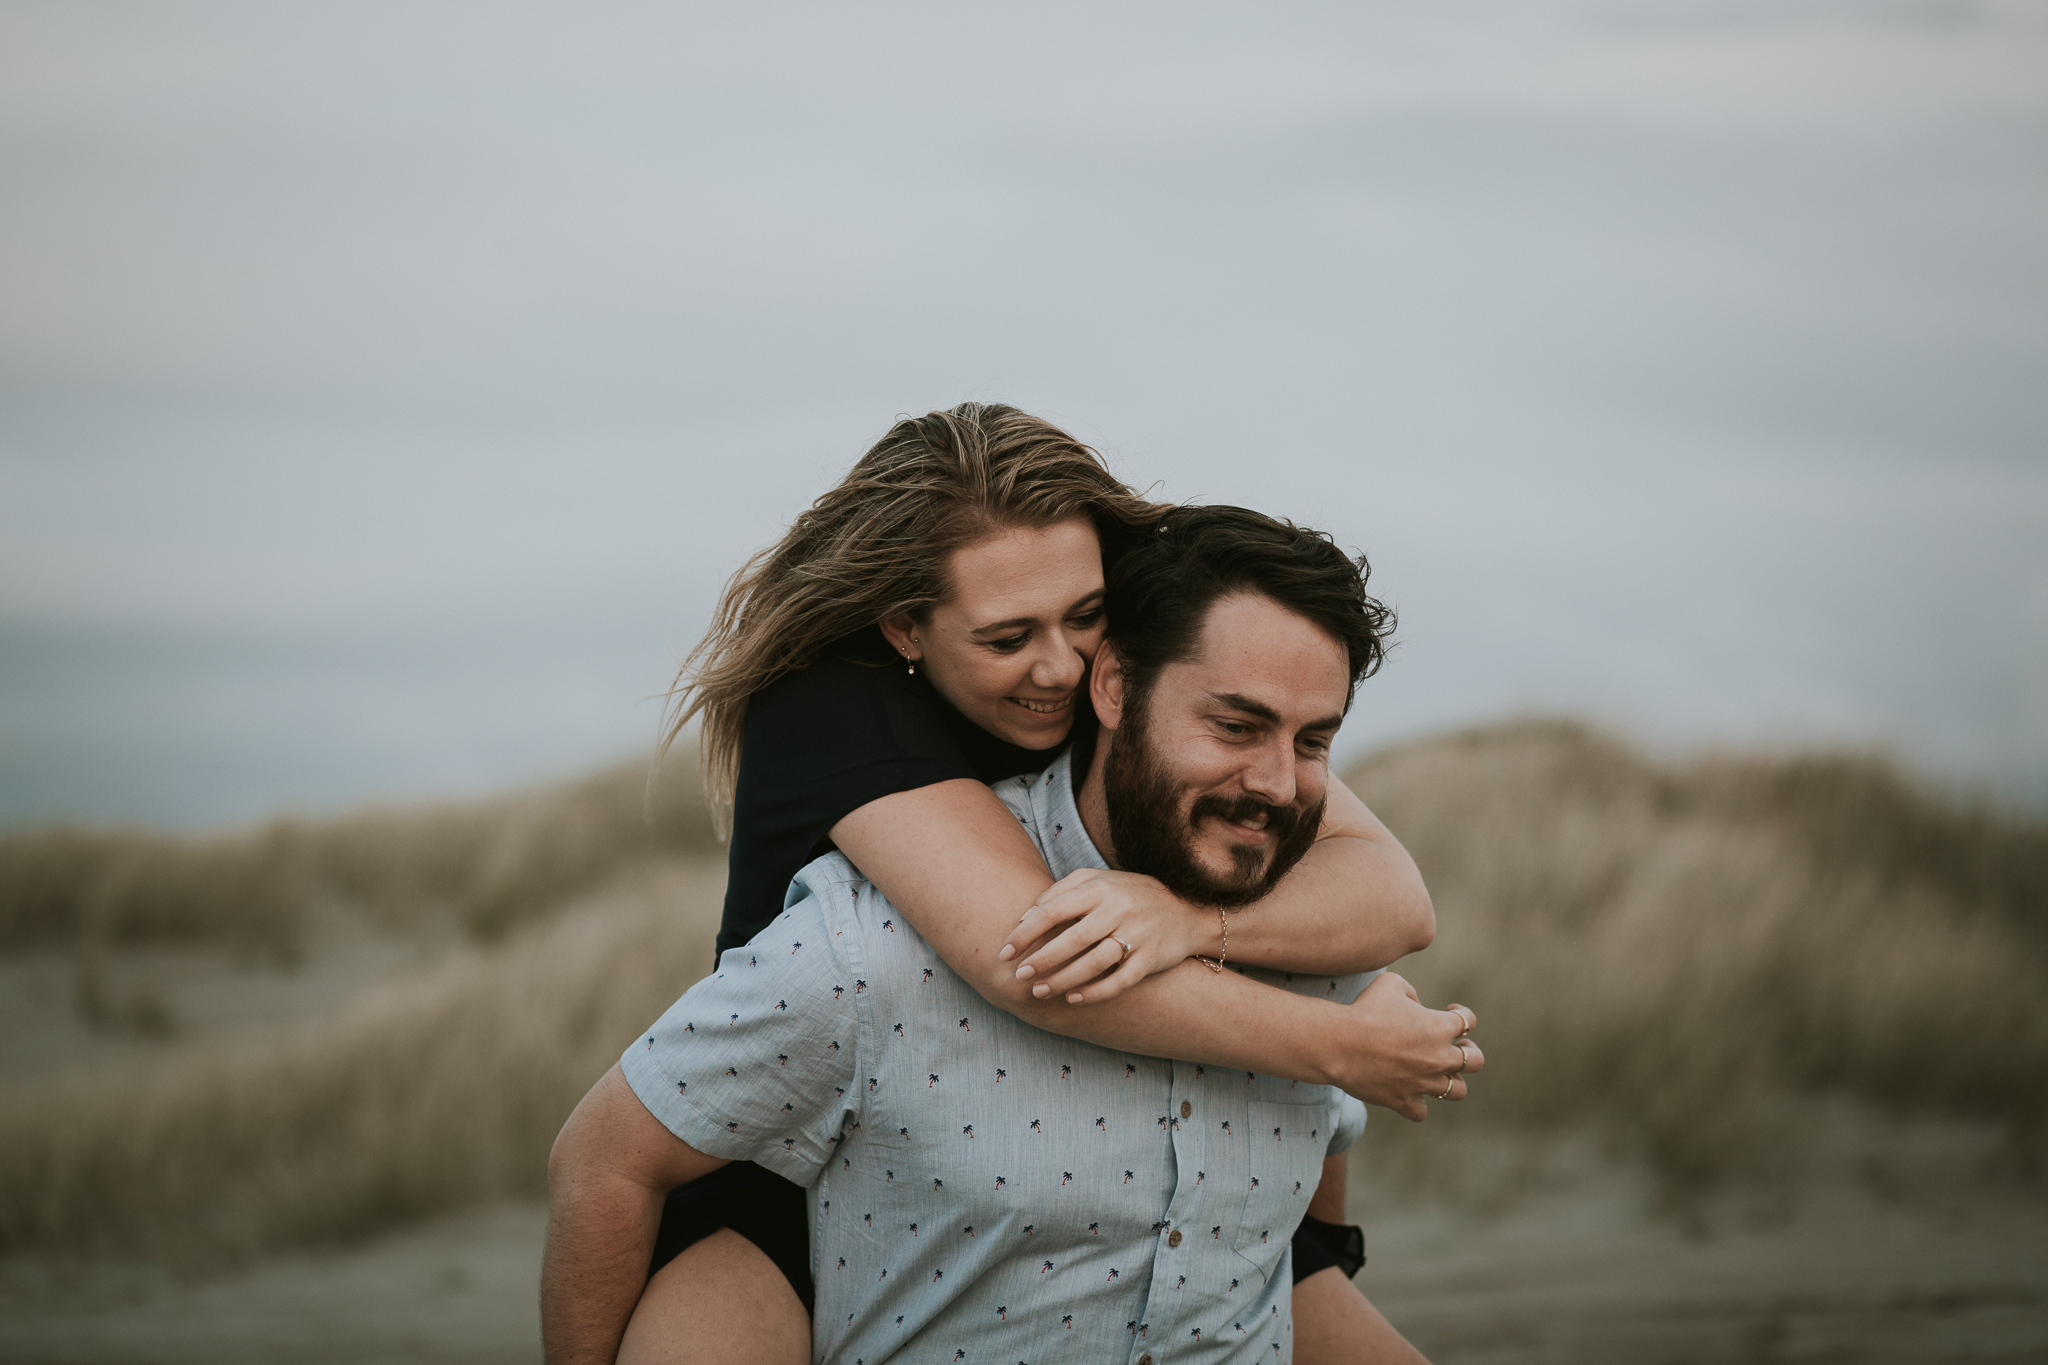 Ohope Beach engagement Shoot Wedding Photographer Napier-78.jpg